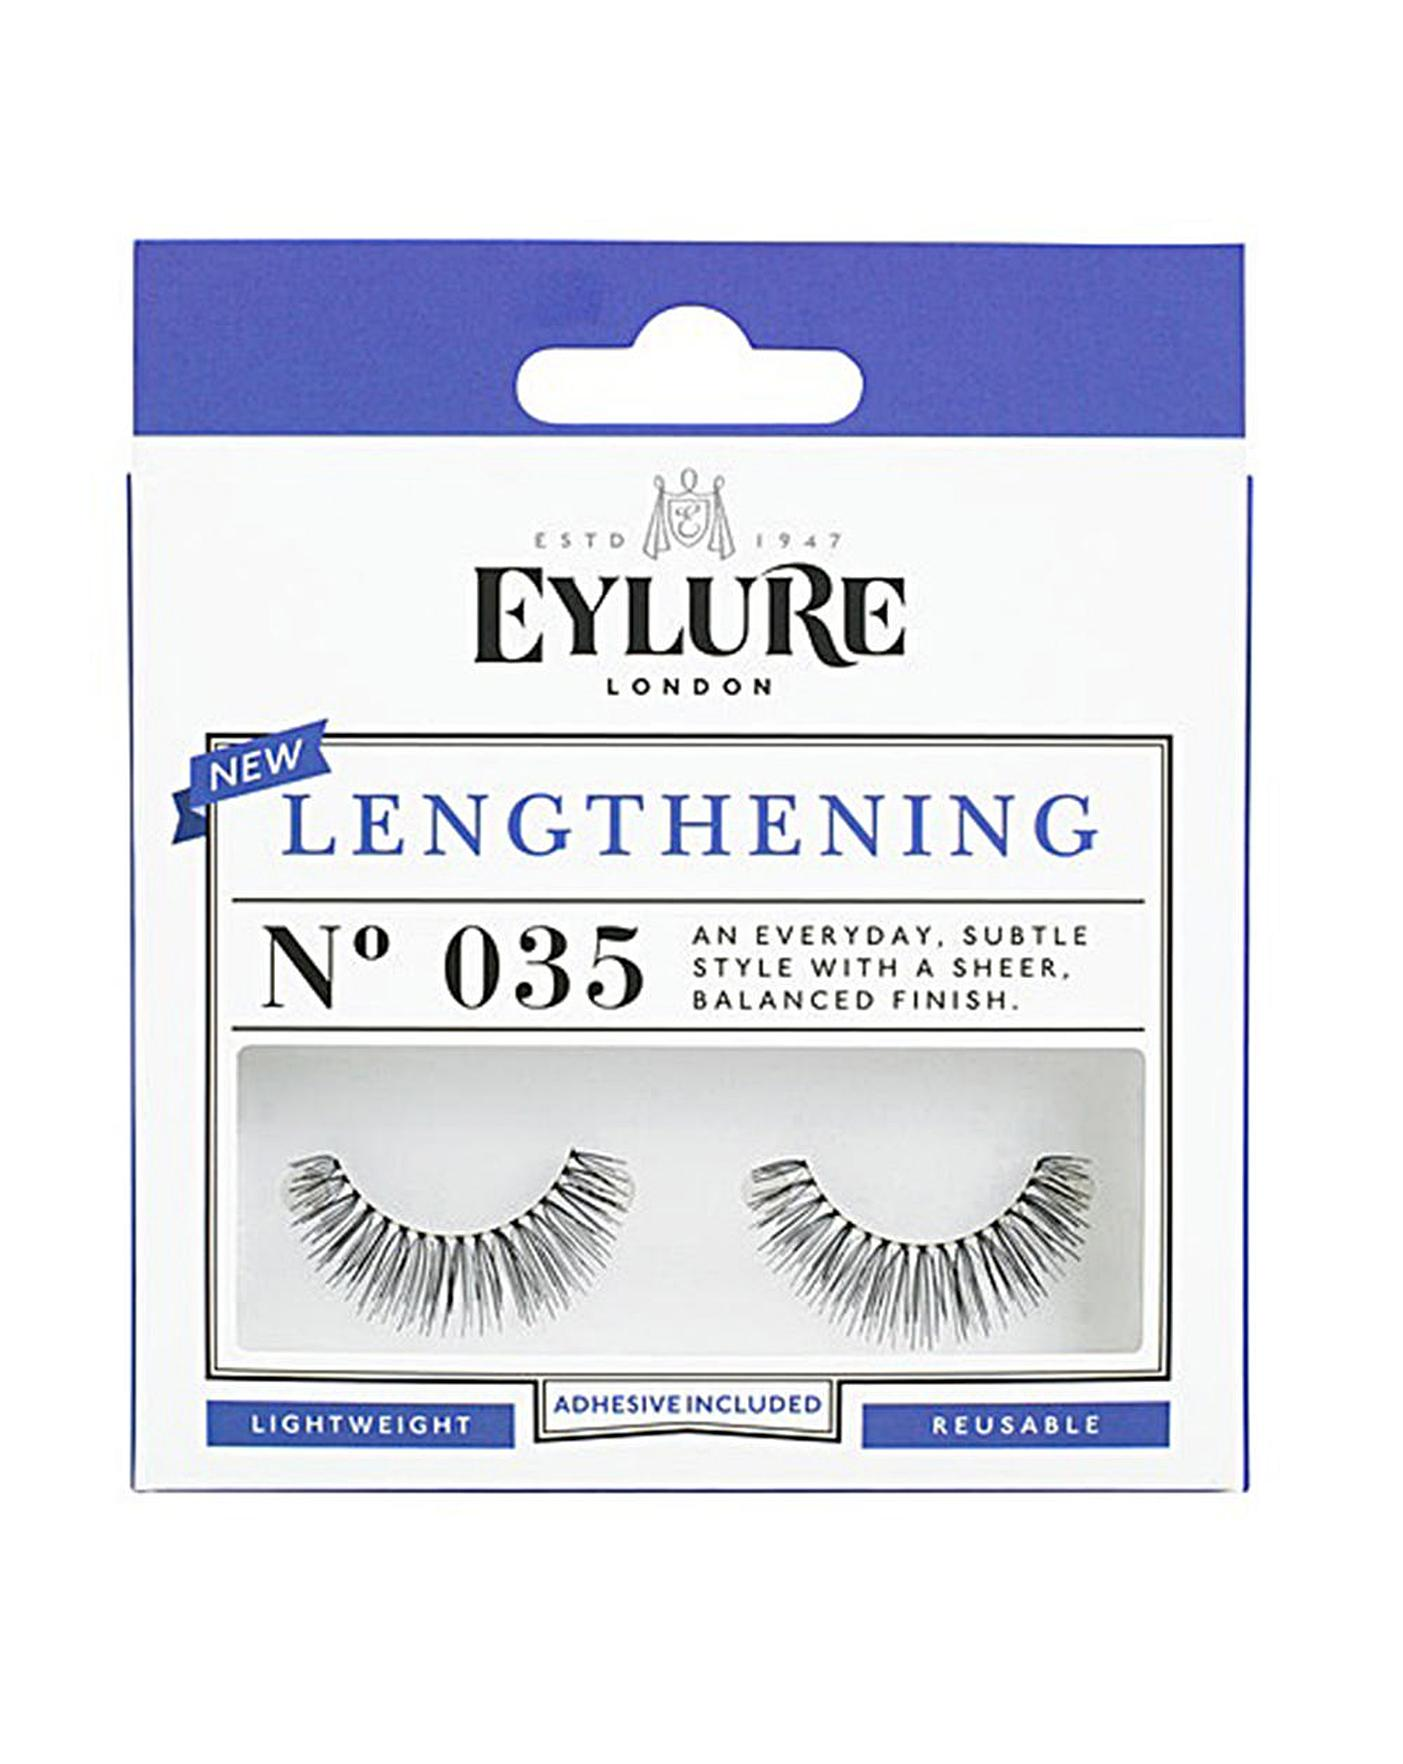 587a5ce8163 Eylure Lengthening Lash 035 | Simply Be